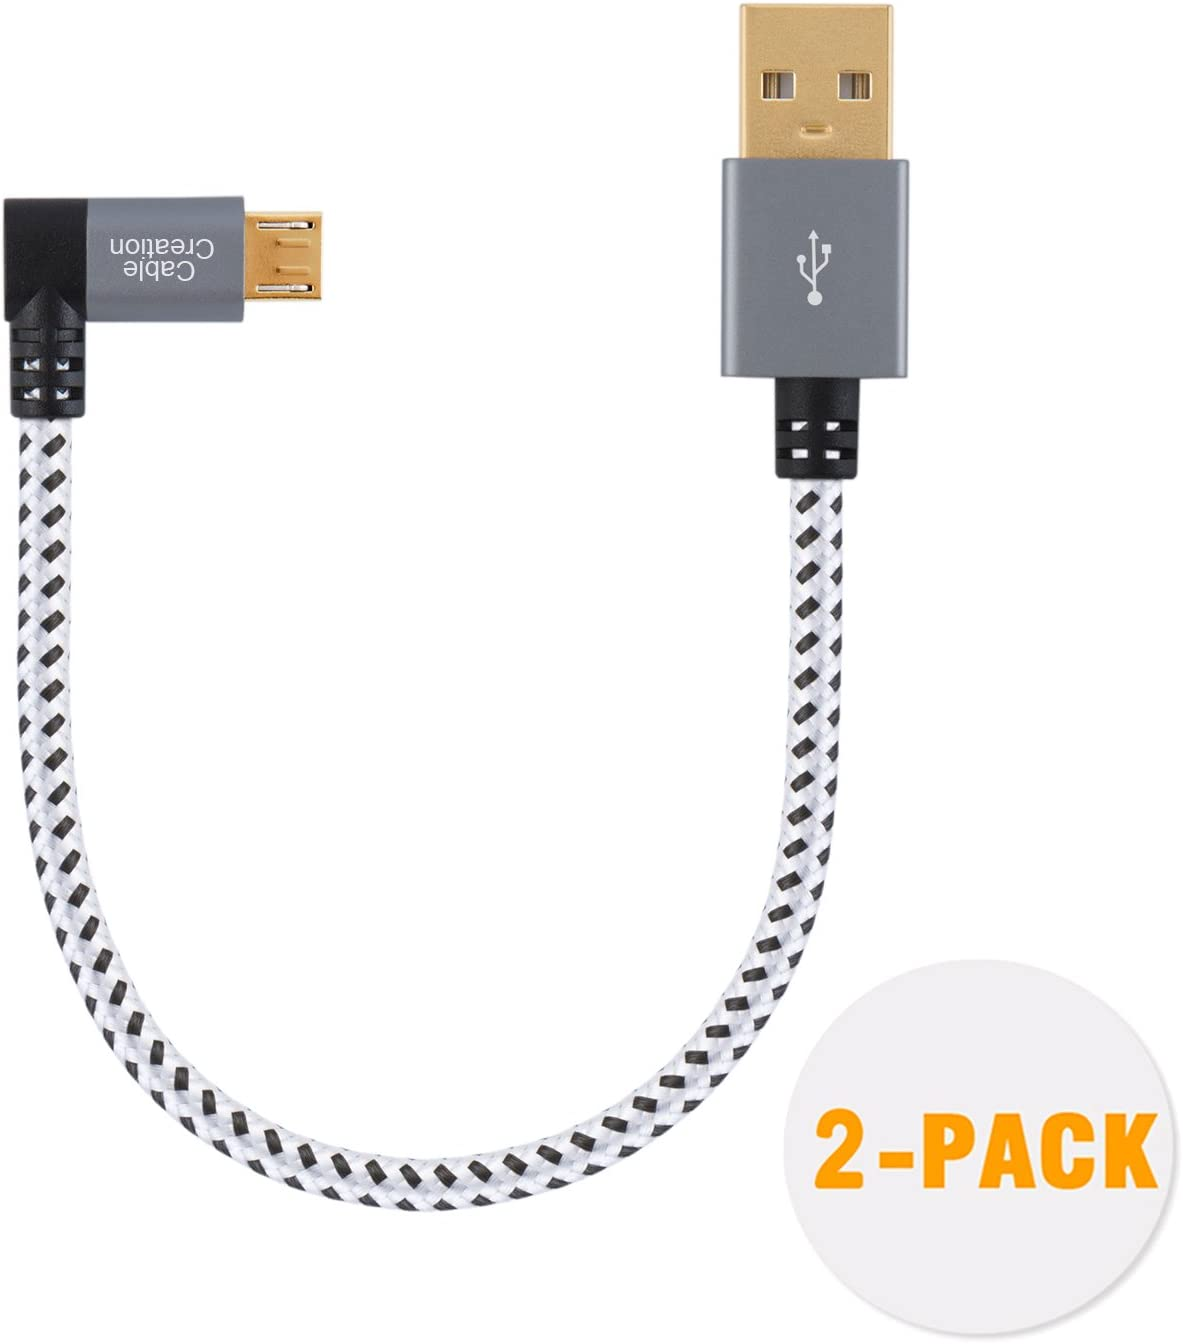 CableCreation 2 Pack Short Right Angle Micro USB 2.0 Braided Cable, 90 Degree USB 2.0 to Micro USB Charging Data Cable Compatible with Roku Streaming Stick, Aluminum Case, 0.5 FT/ 15CM, Space Gray